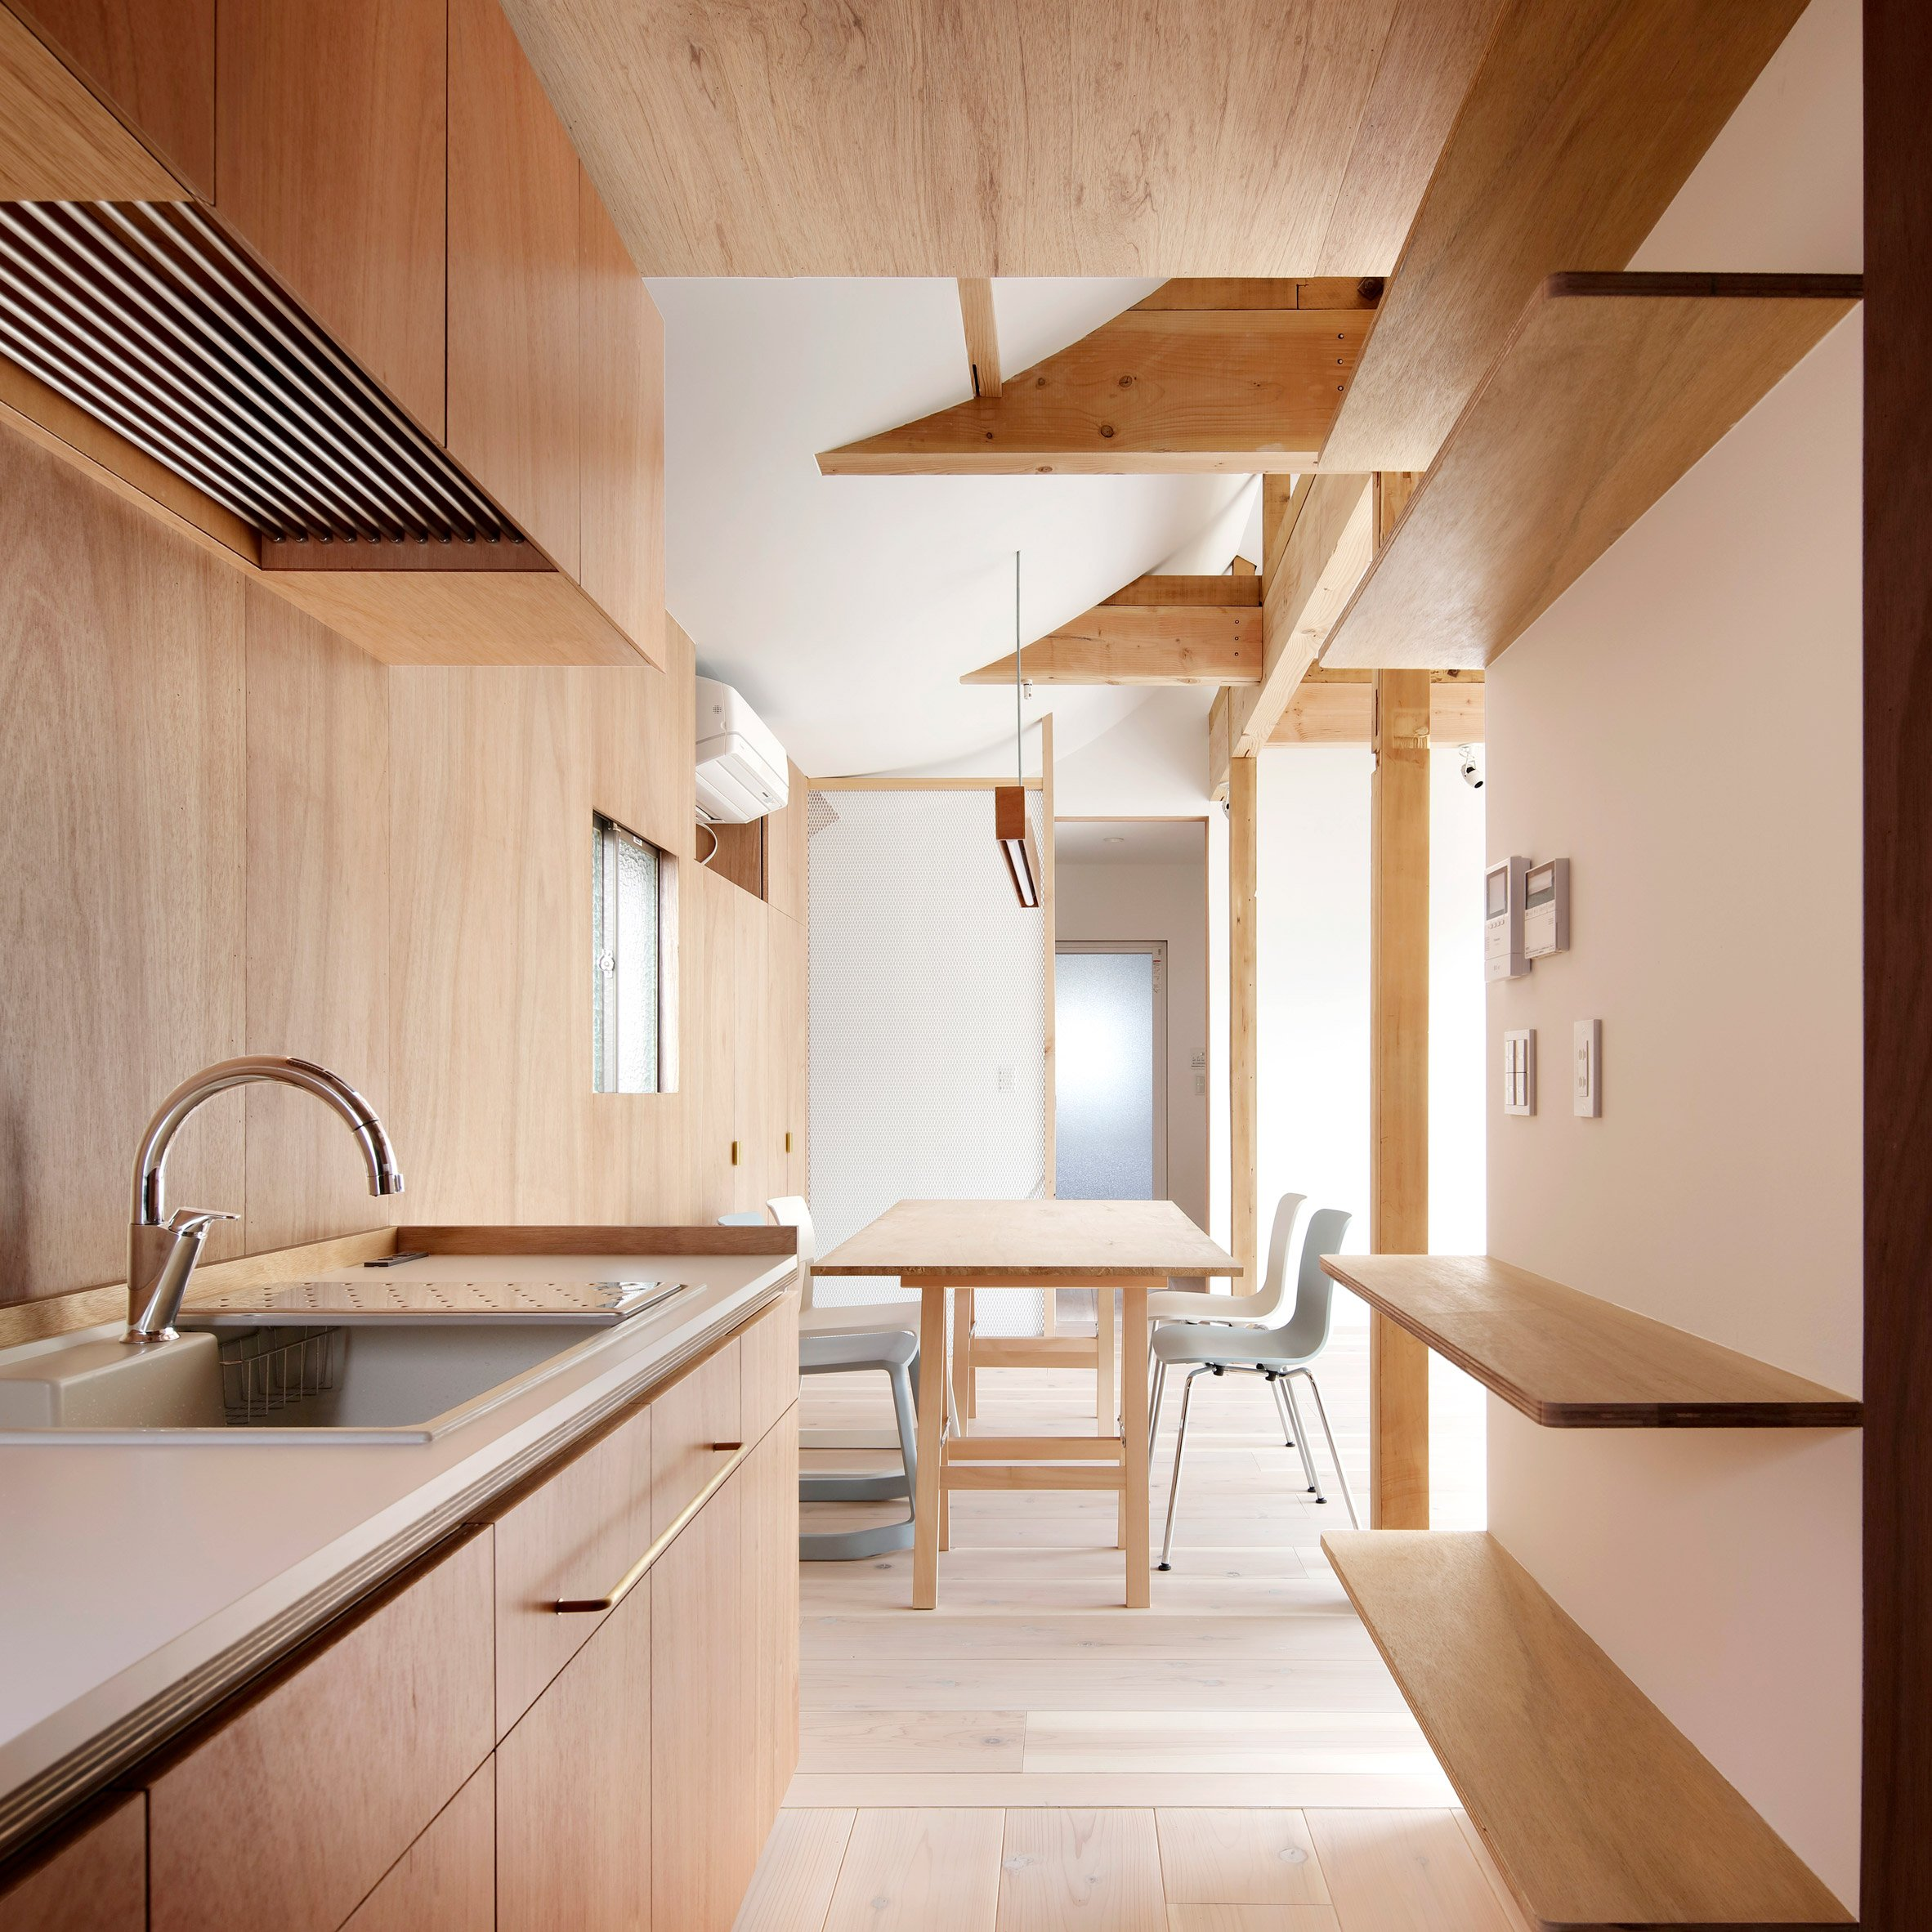 House for 4 Generations by Tomomi Kito